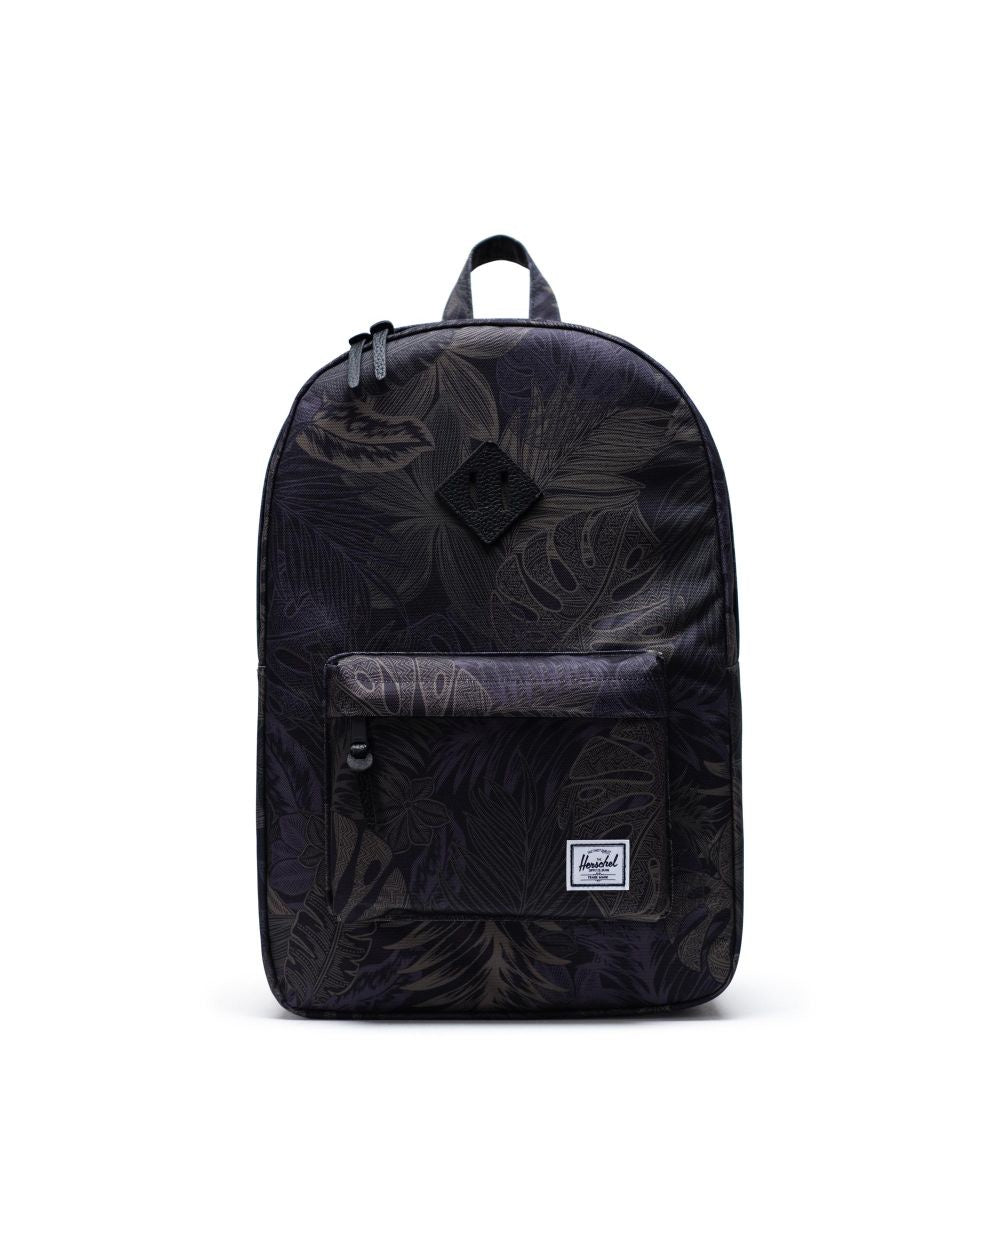 HERSCHEL - HERITAGE BACKPACK IN DARK JUNGLE